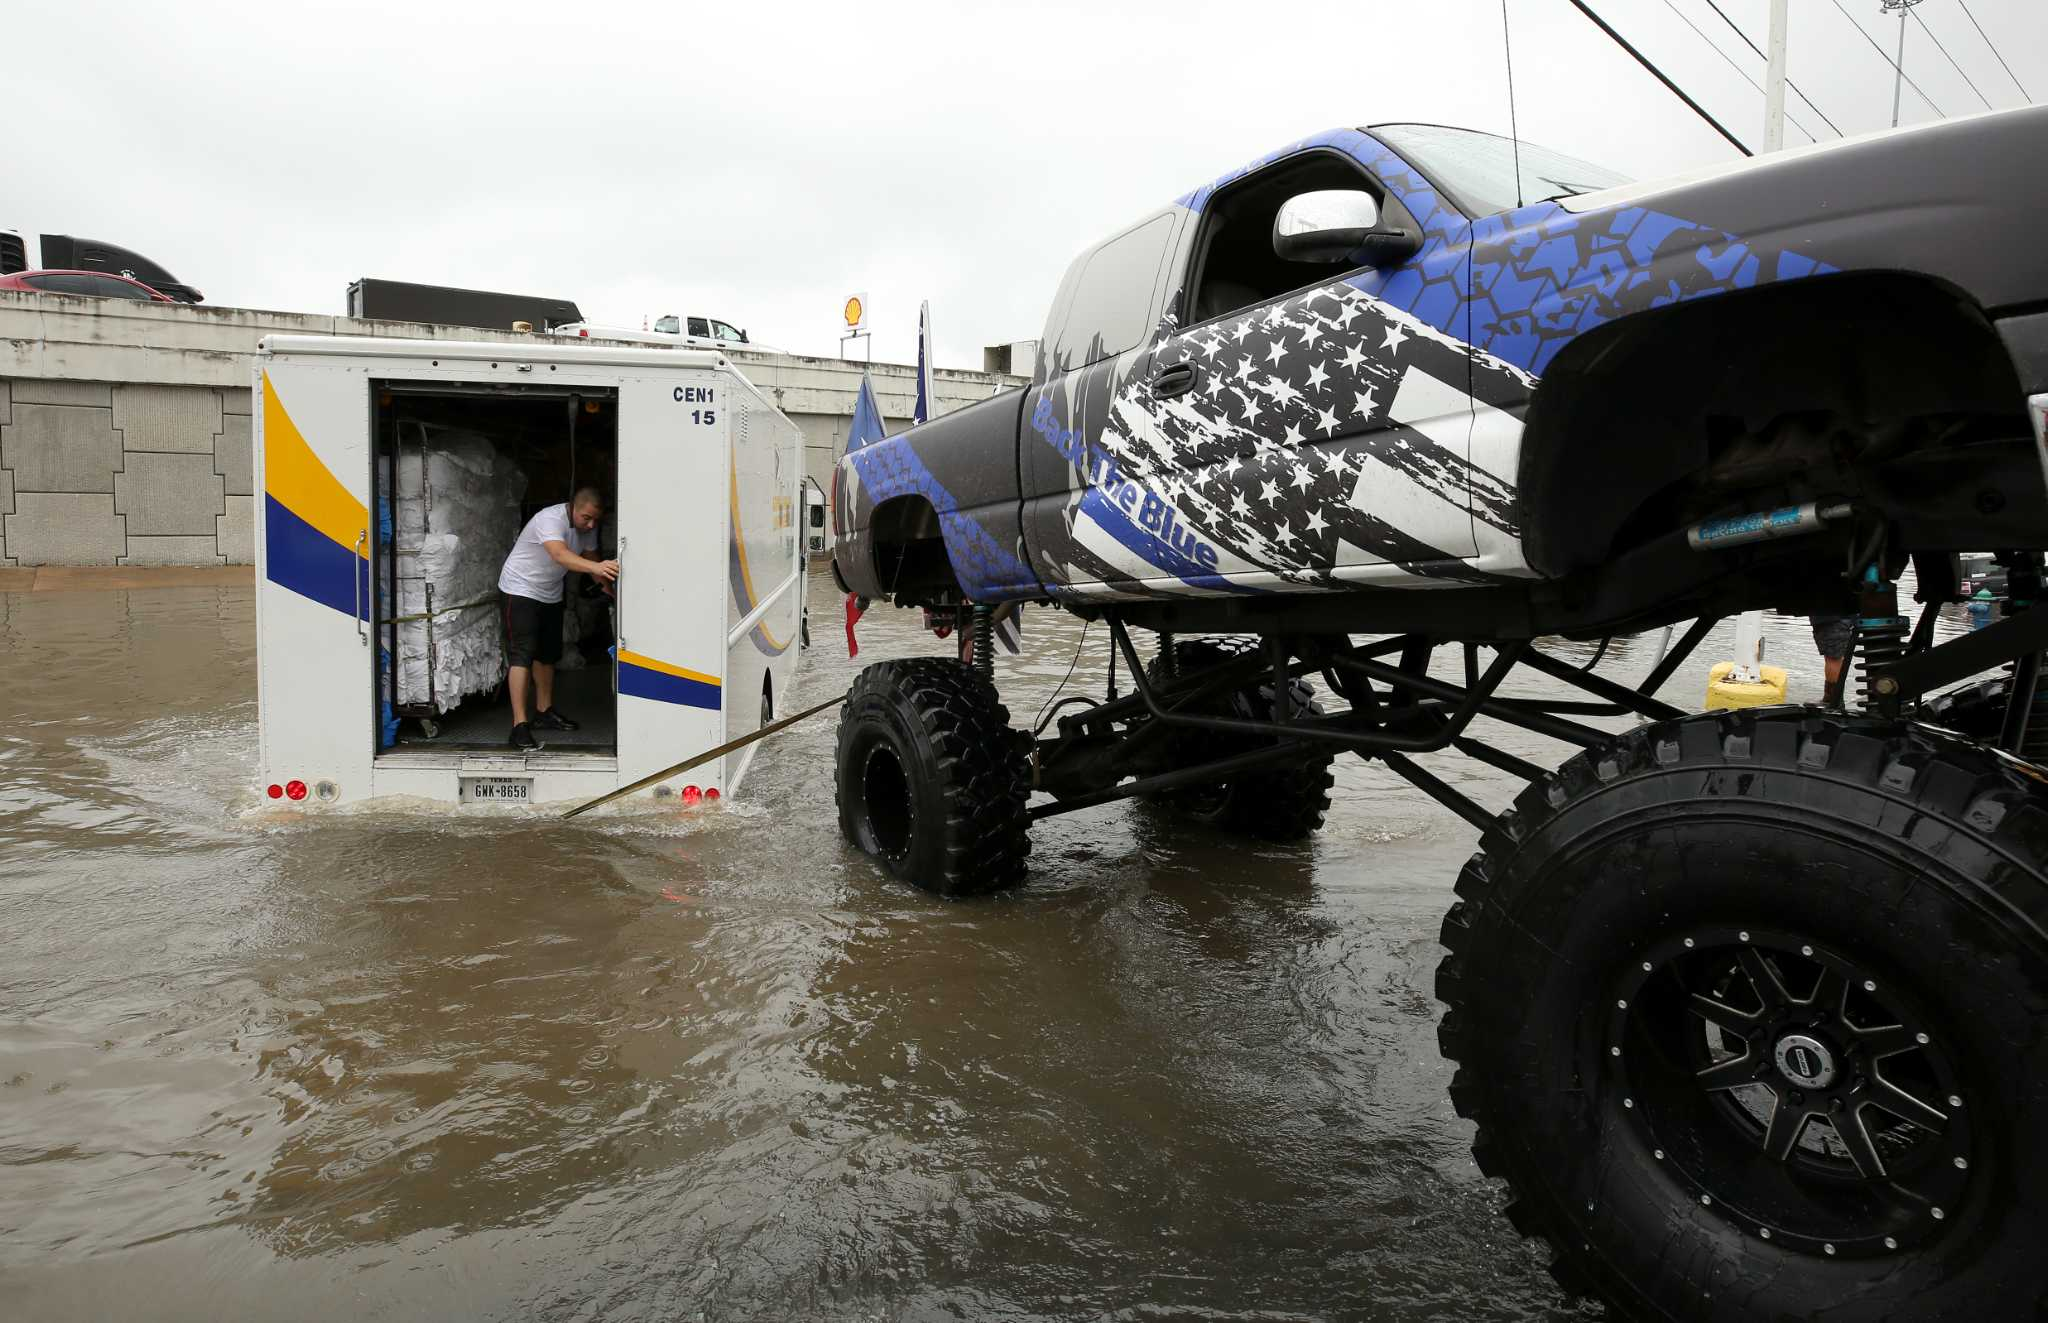 Video posted to Facebook shows a monster truck -- comprised on an SUV on monster truck wheels -- pulling a U.S. Army vehicle out of deep floodwaters in Houston on Wednesday. A crowd cheers as the.